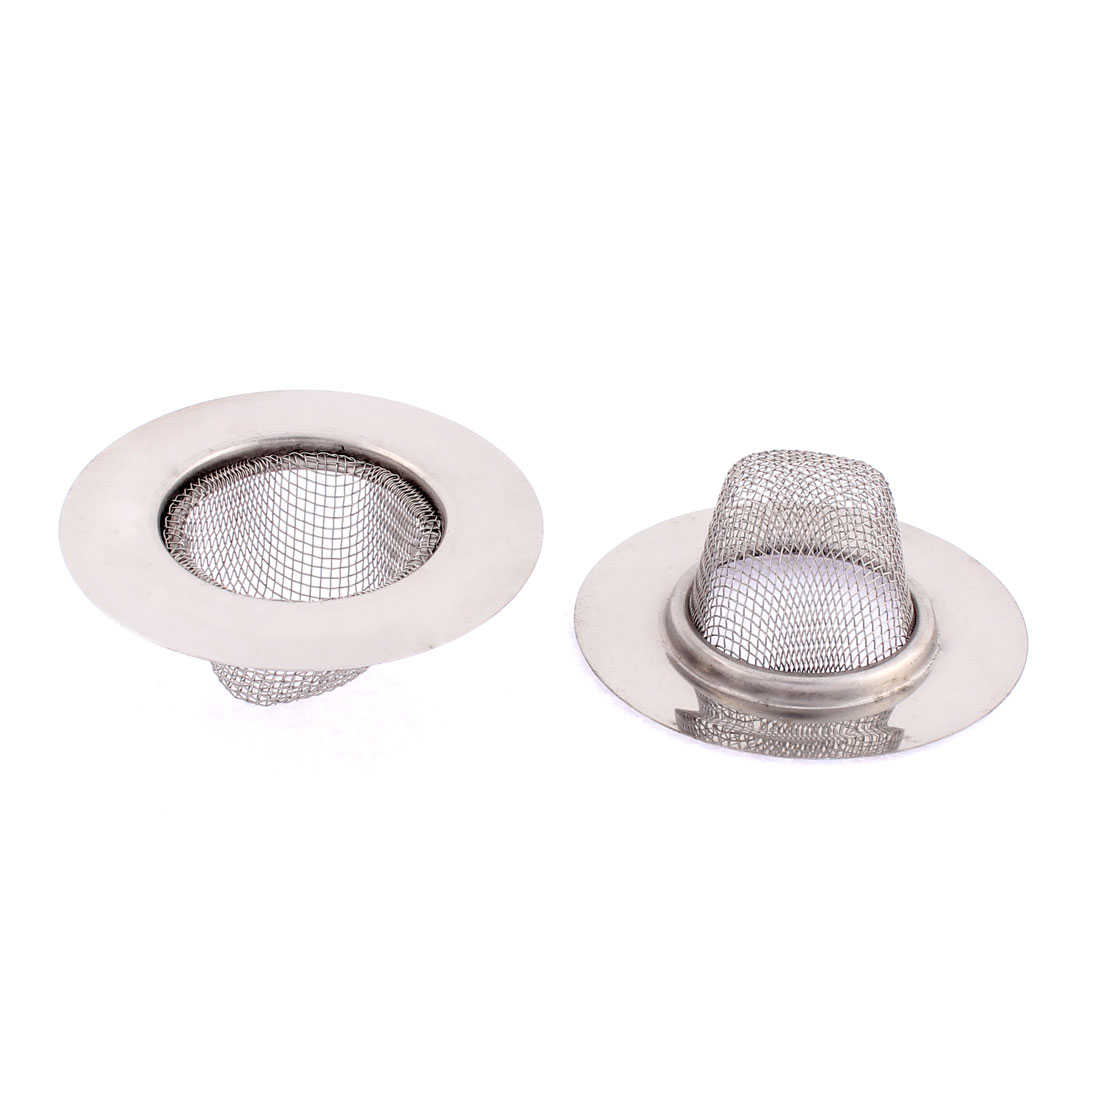 Unique Bargains Kitchen Stainless Steel Basin Wire Mesh Sink Strainer 73mm Dia 2 Pcs